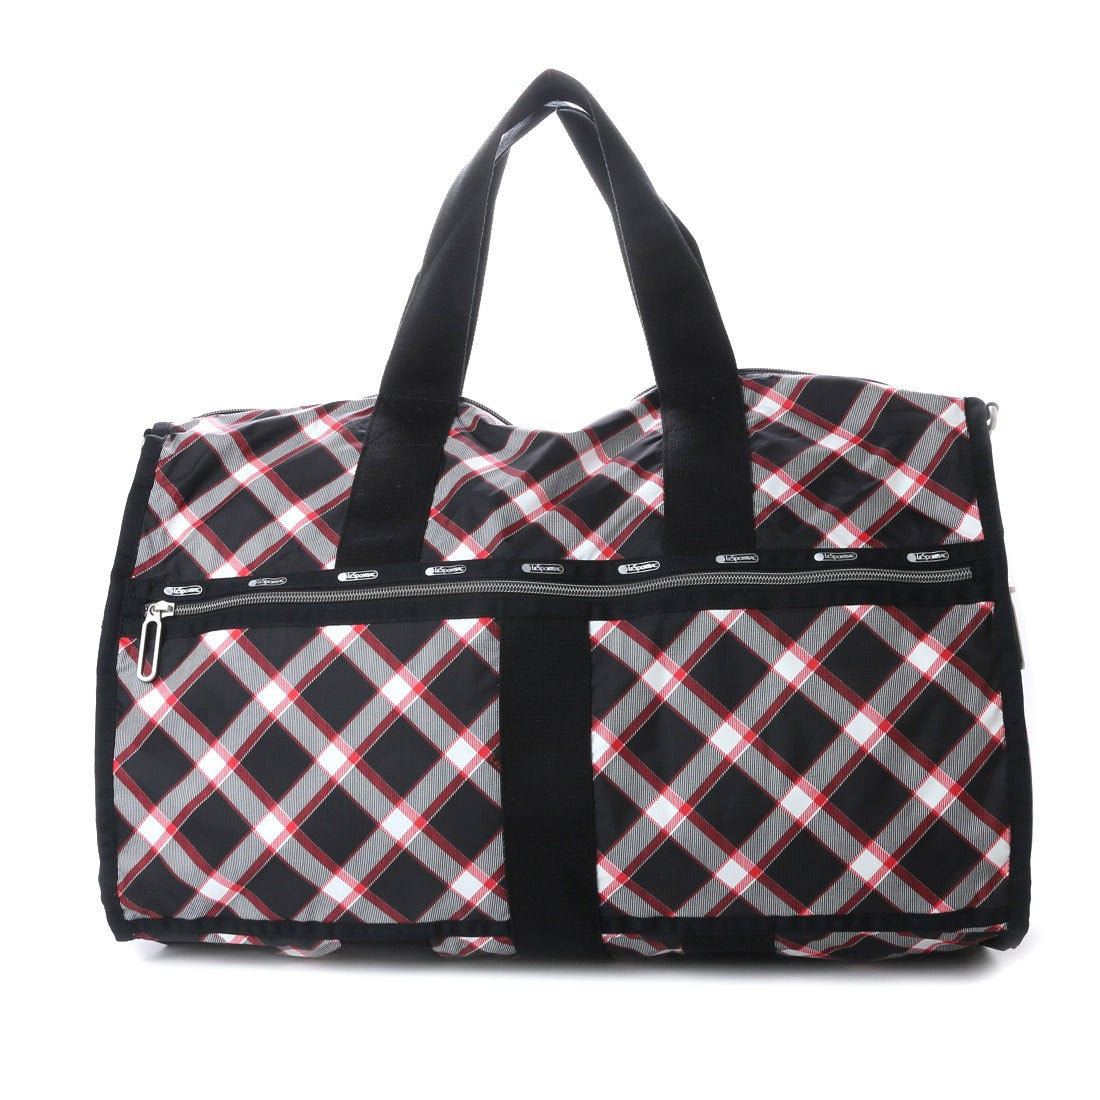 【SALE 30%OFF】レスポートサック LeSportsac CR LARGE WEEKENDER (PARTY PLAID C) レディース